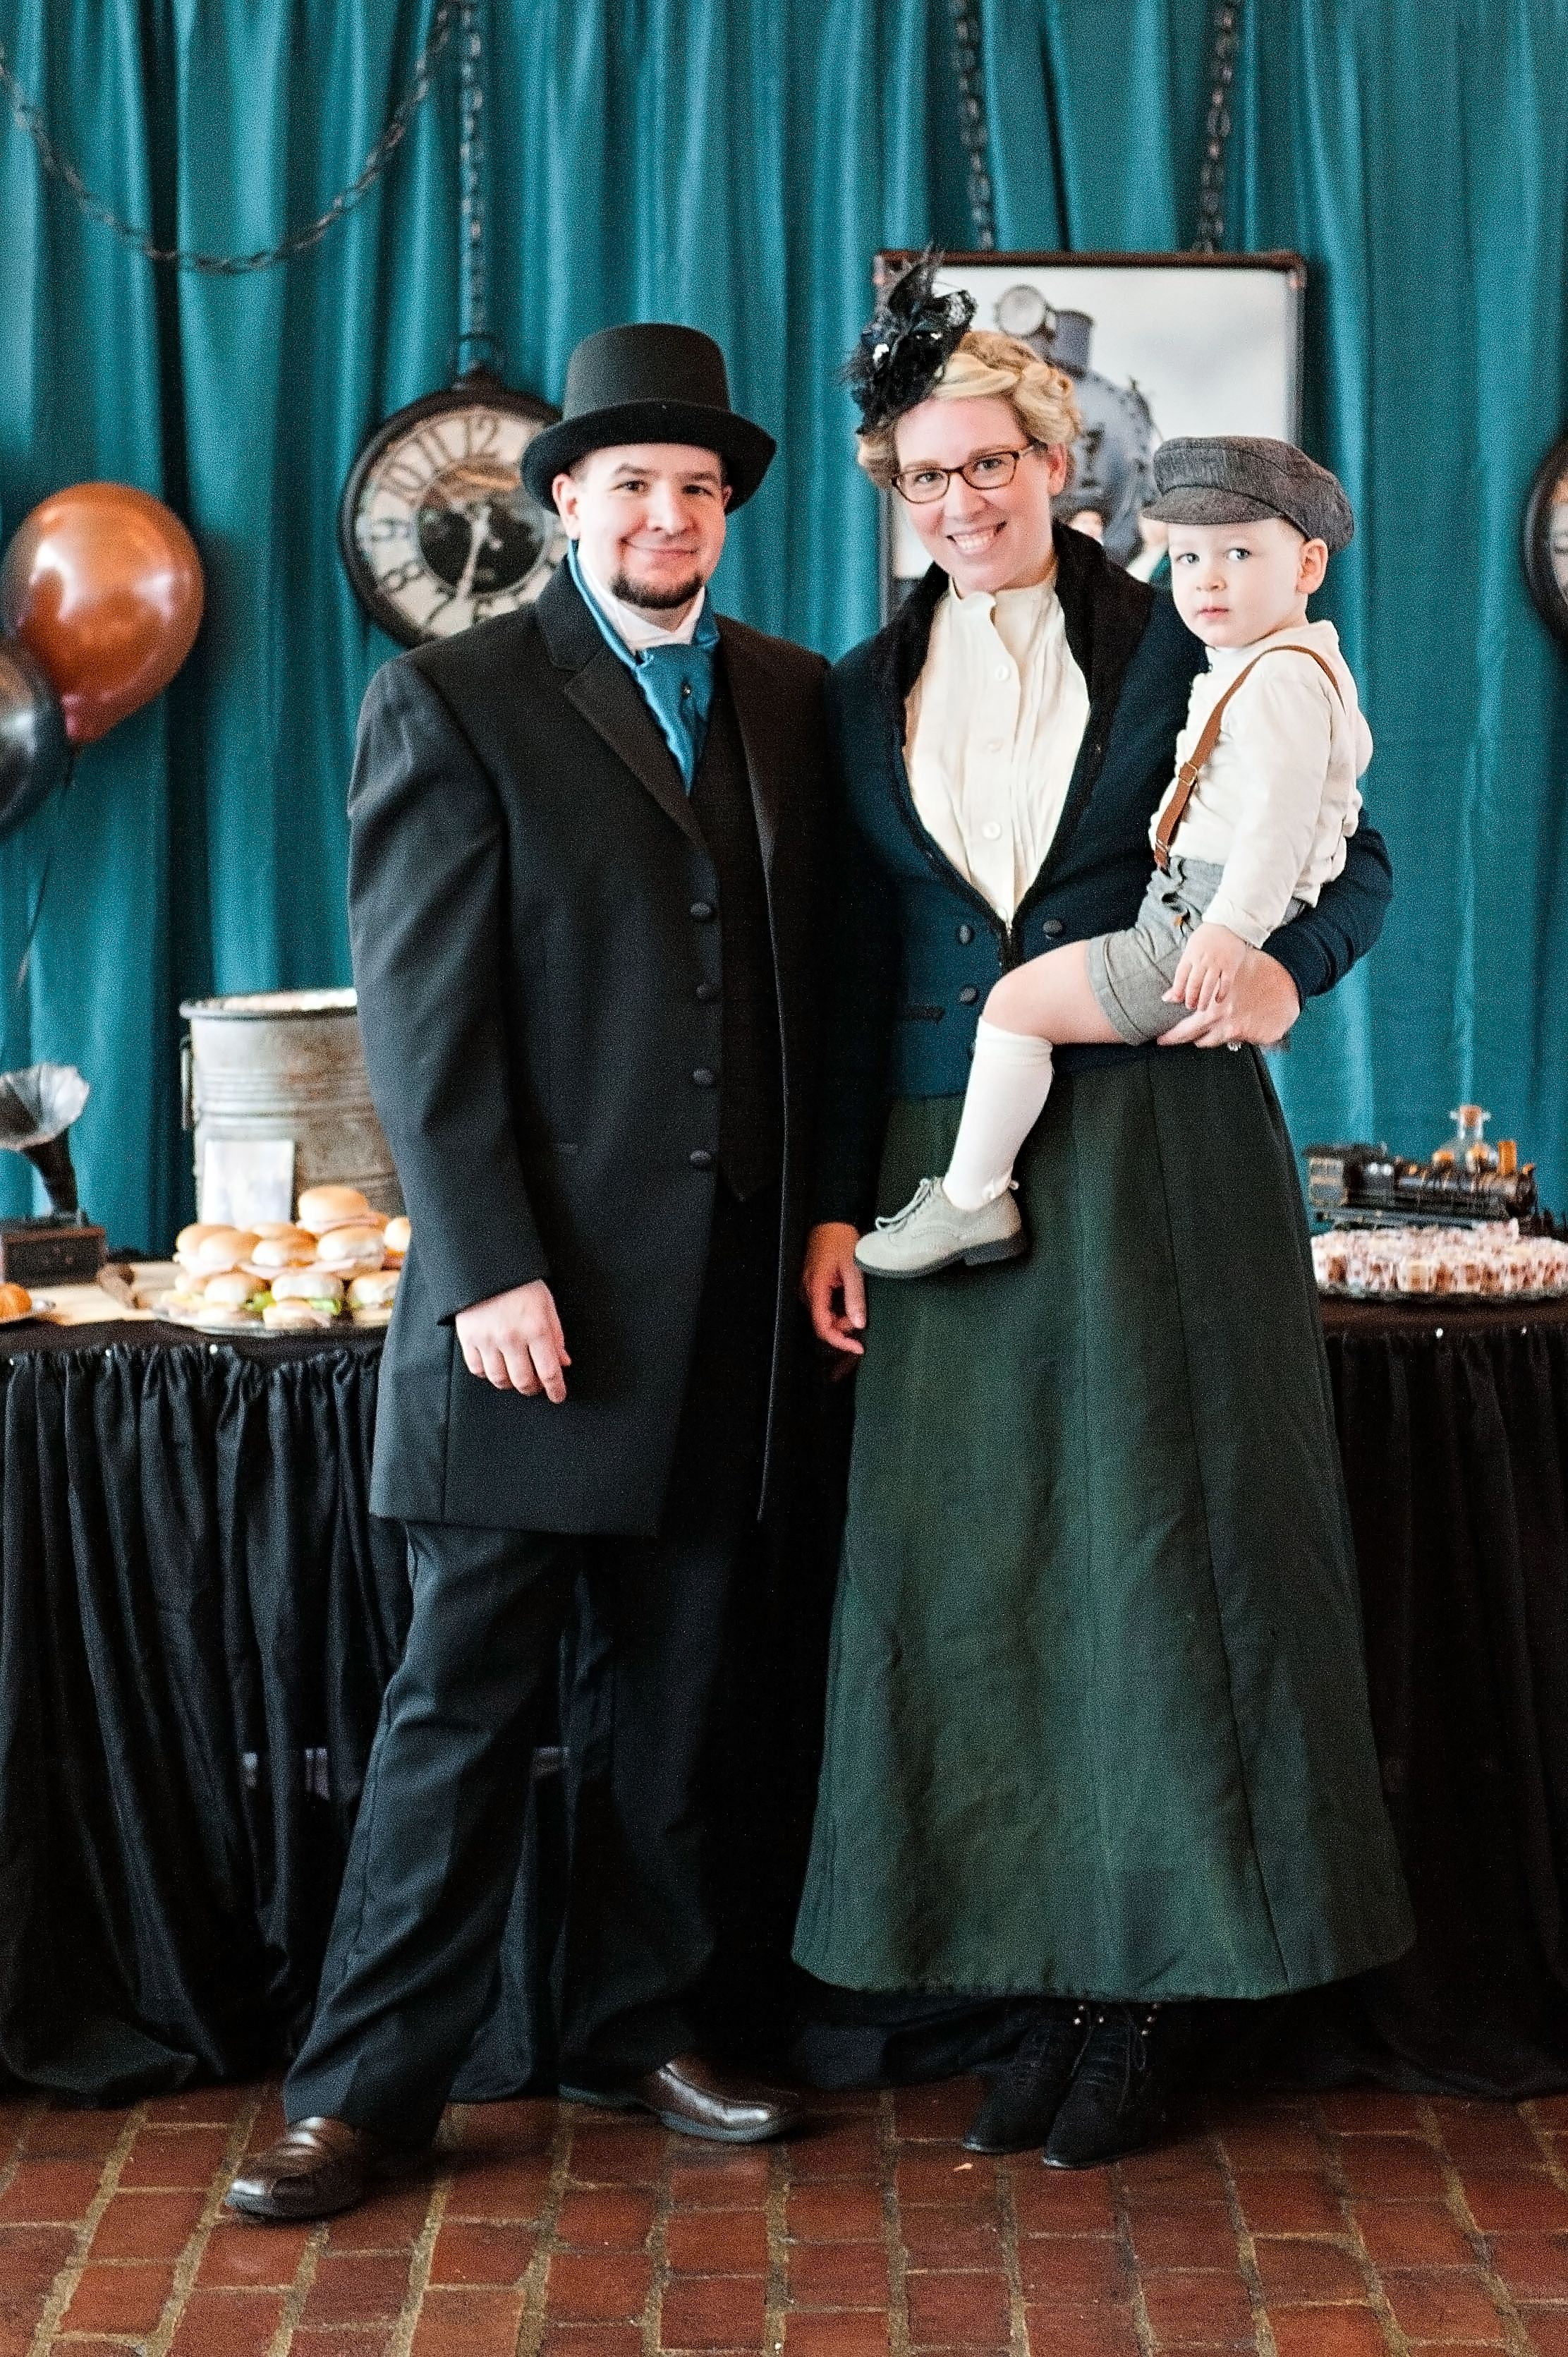 Victorian family outfits! My walking skirt and blouse was original 1900's.